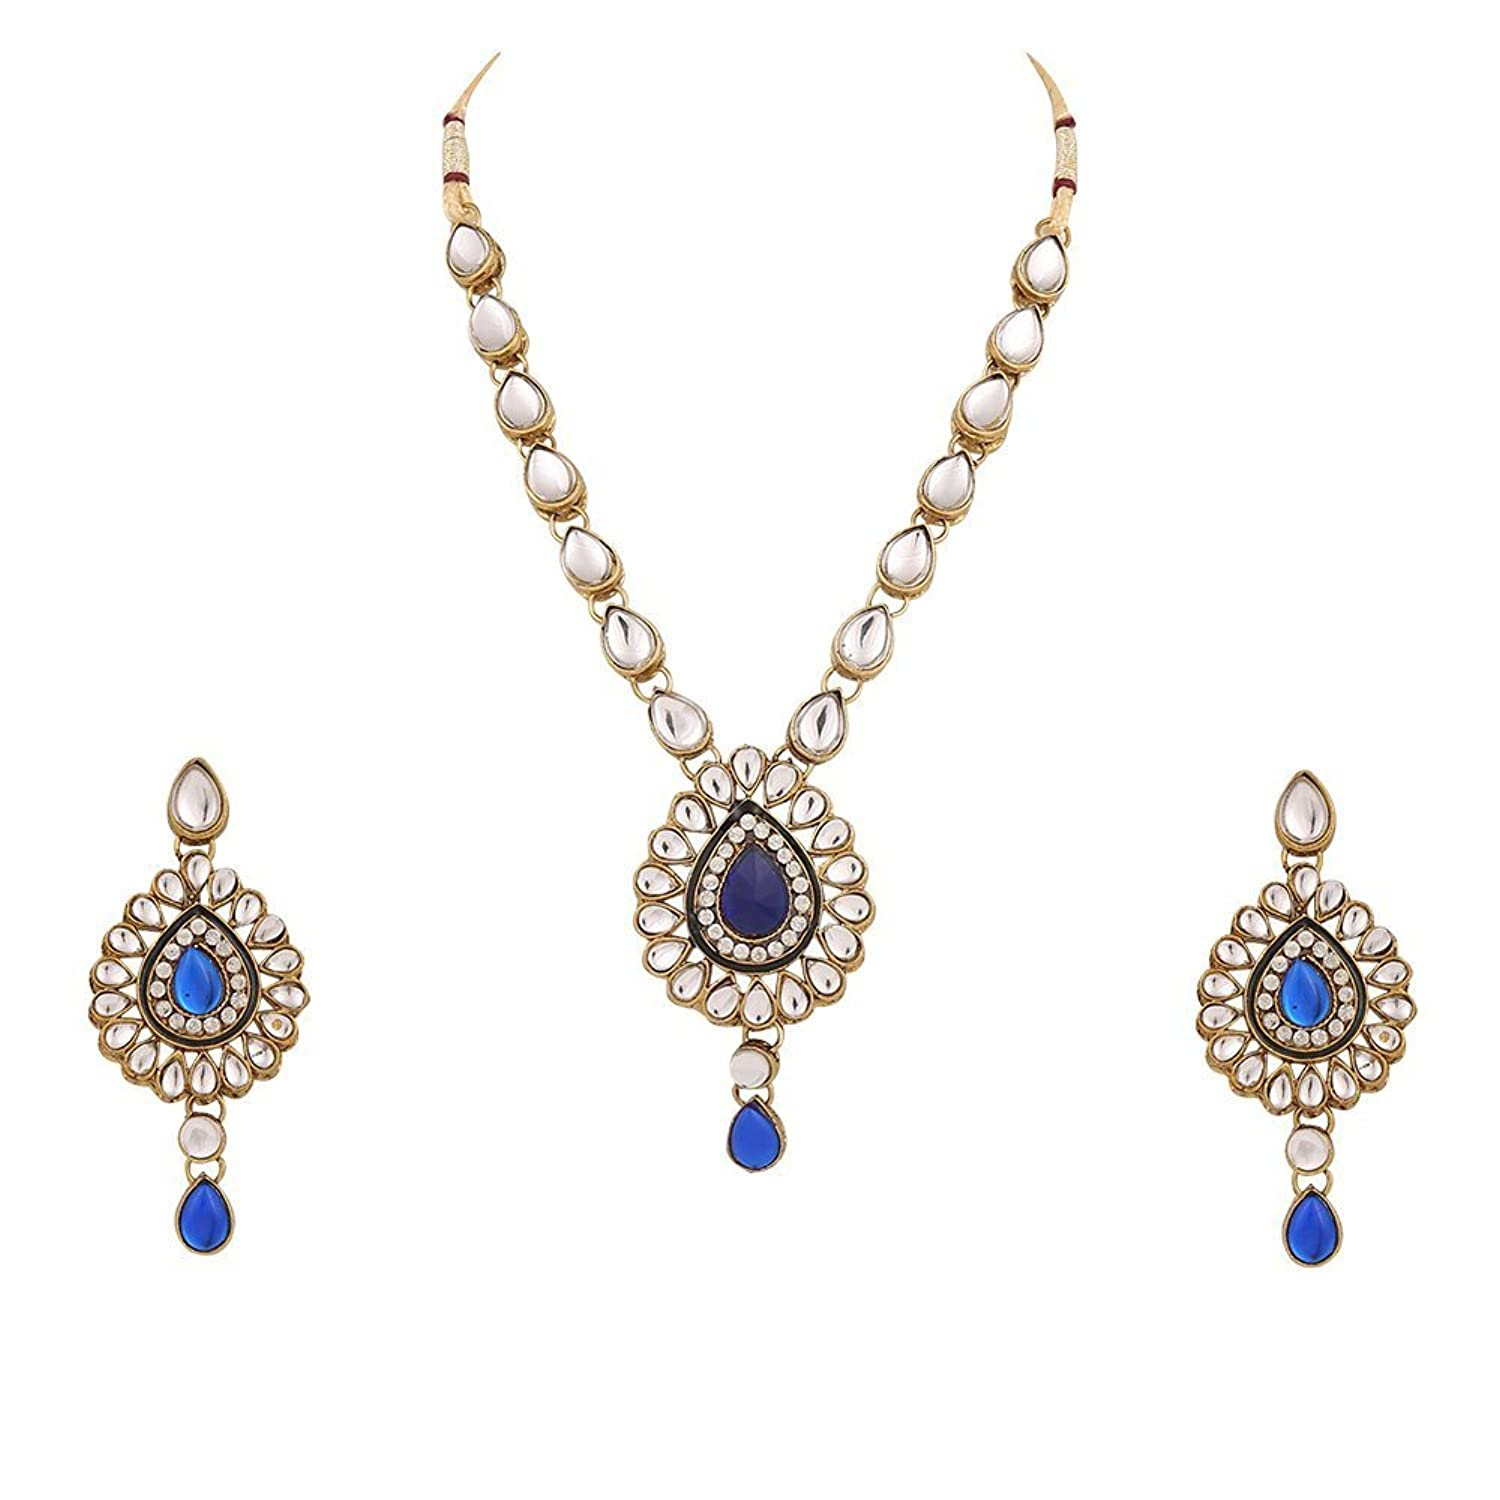 Buy Dancing Girl Blue Metal Pendant Necklace Chain With Dangle ...